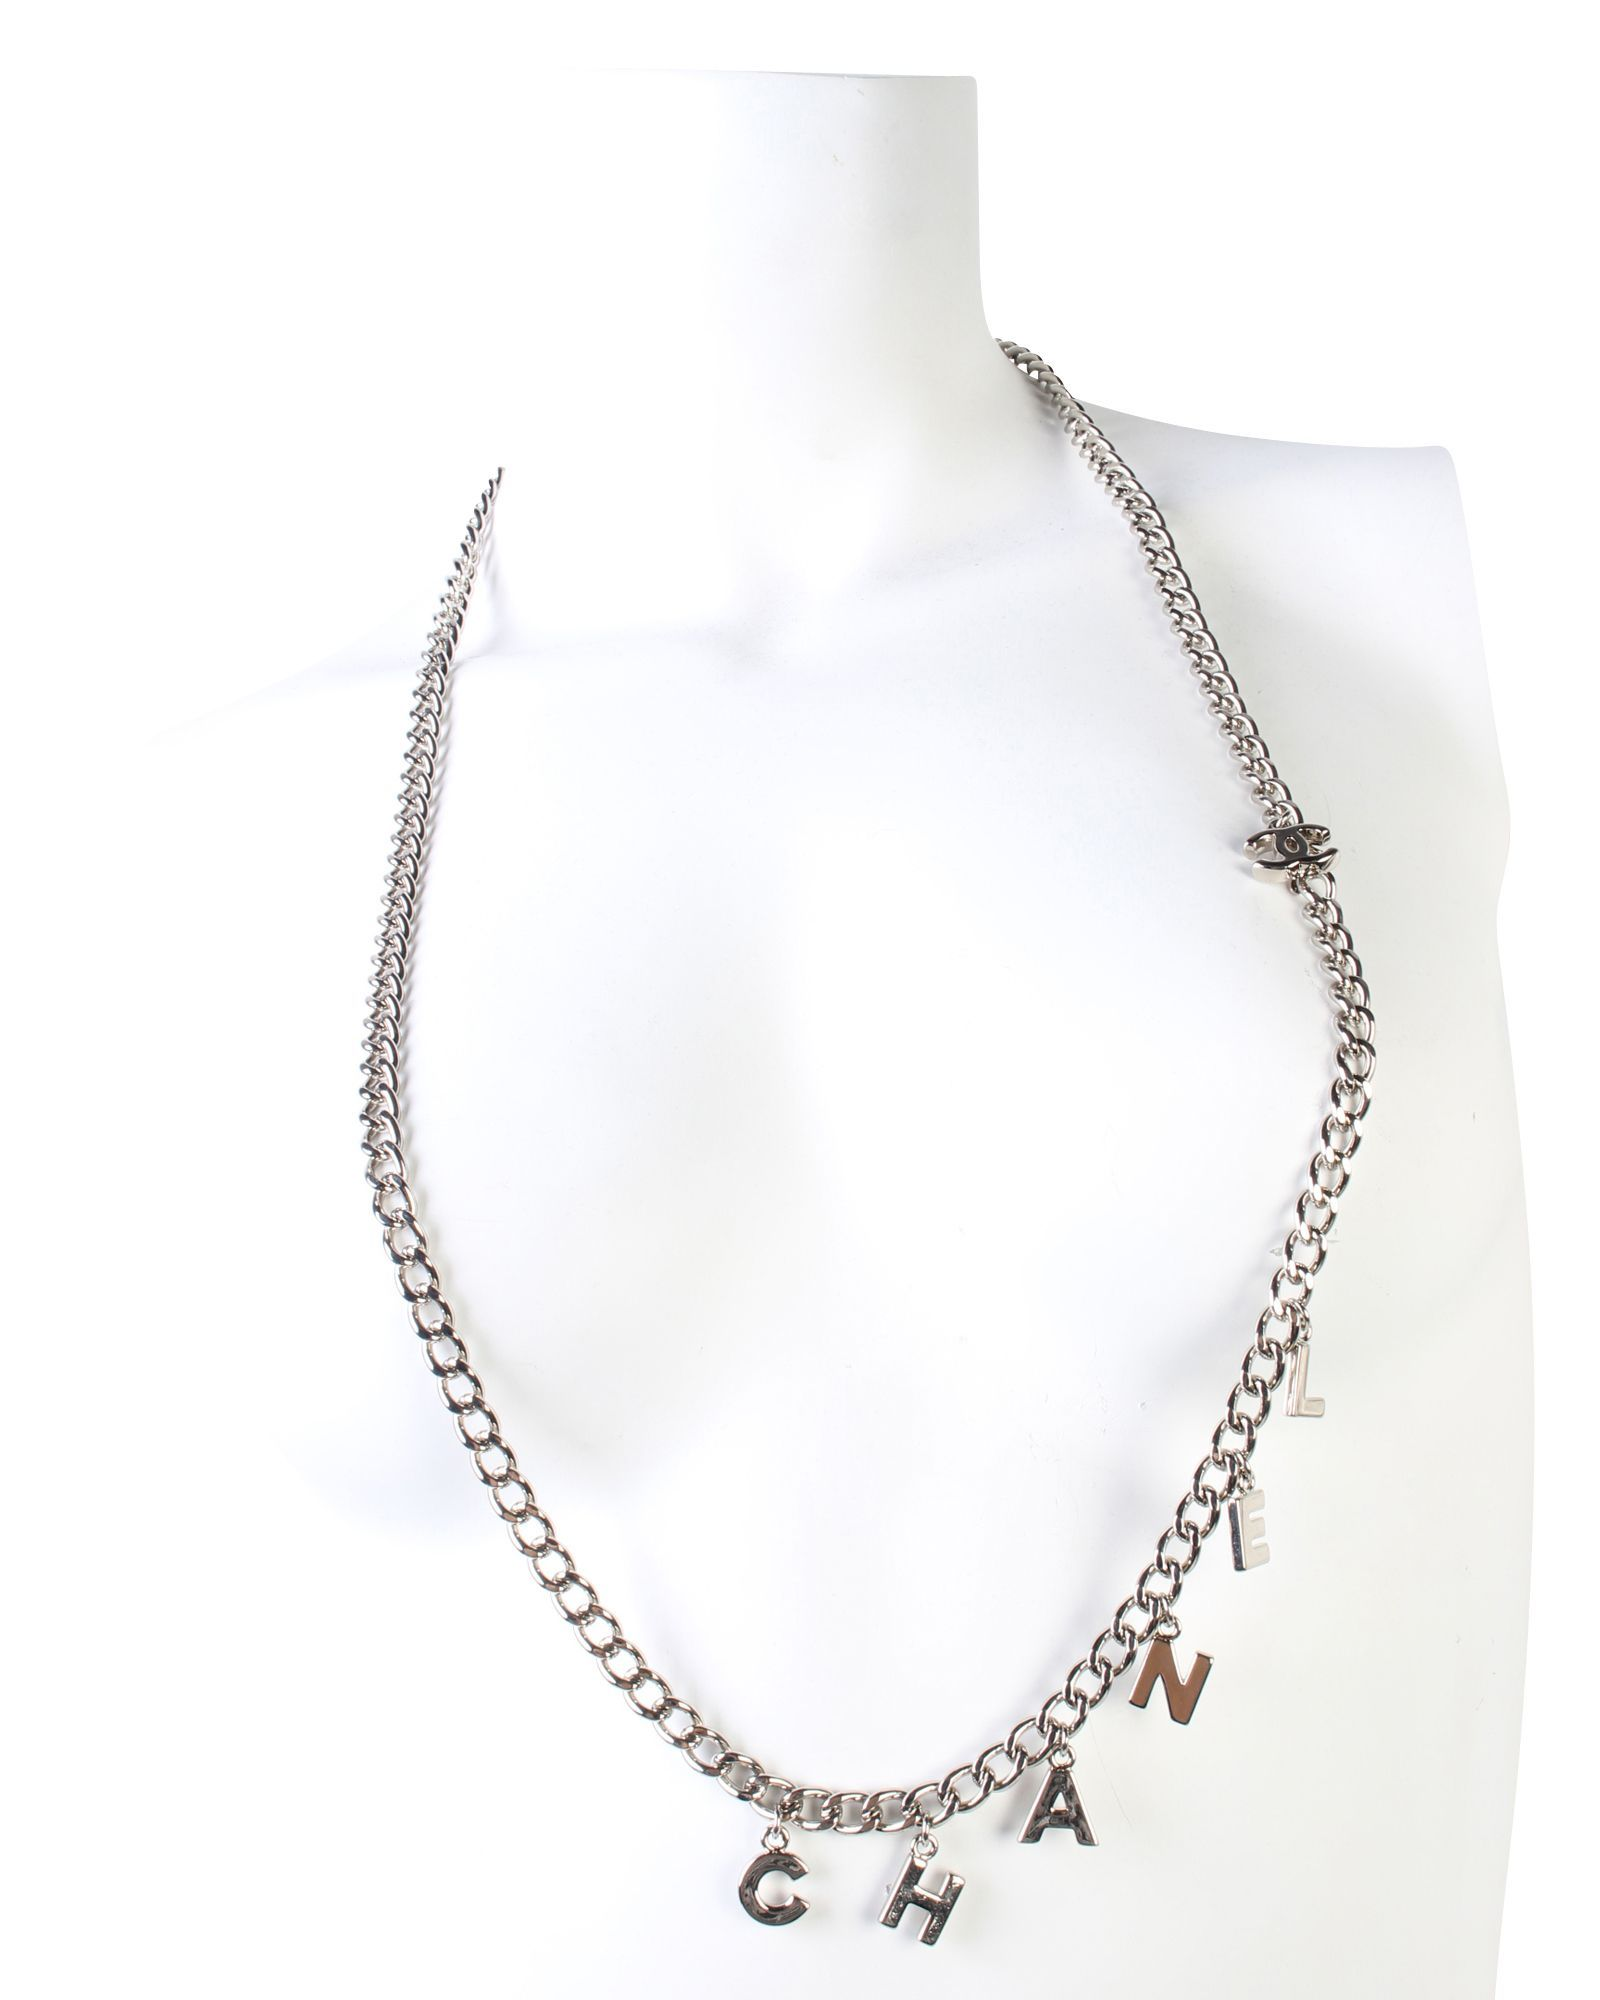 Chanel Chanel Letters Chain Necklace -Pre Owned Condition Excellent